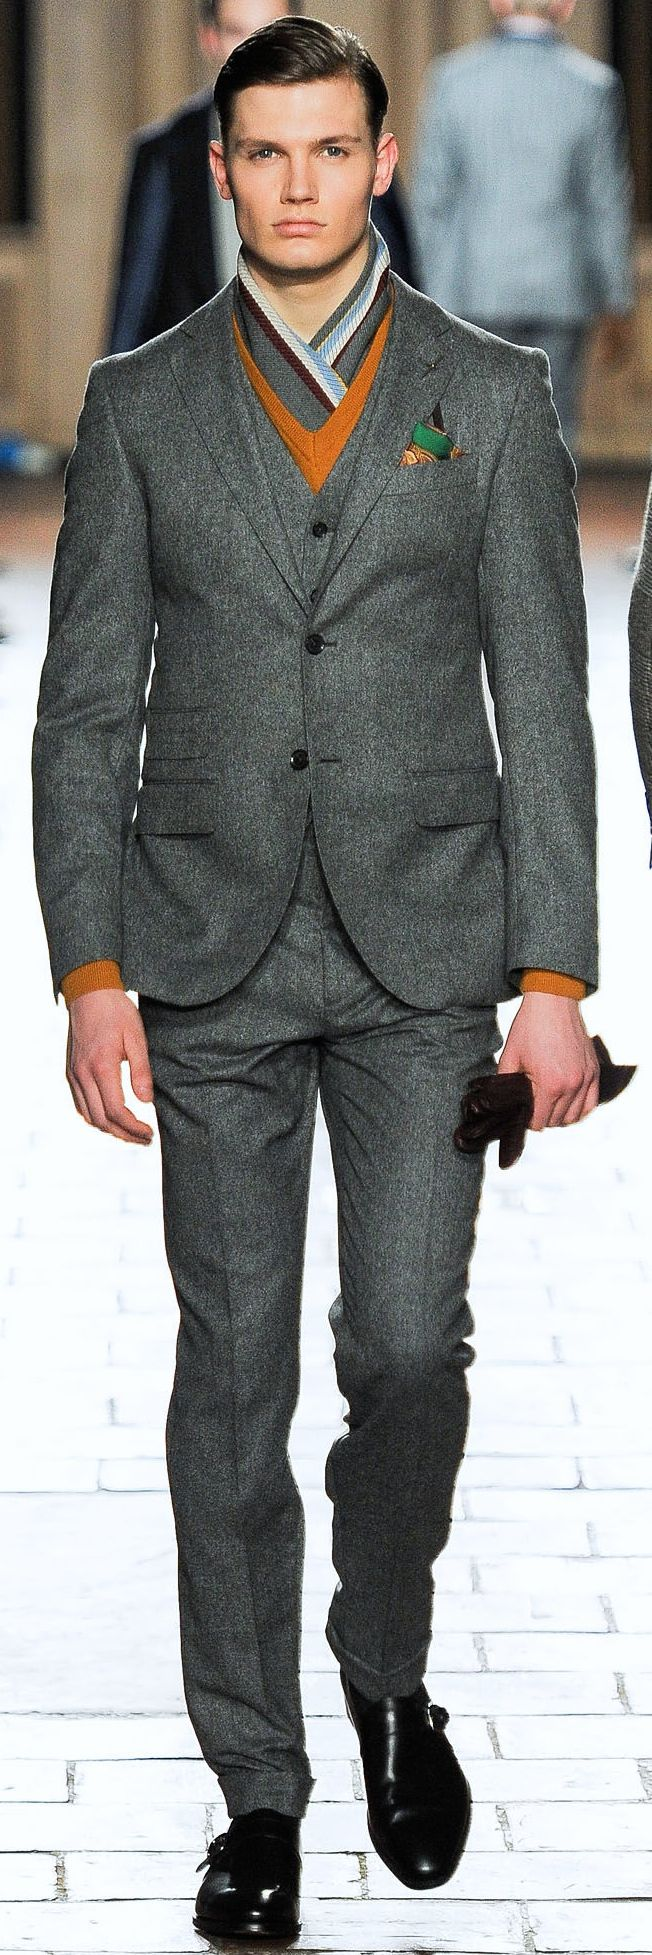 Hackett London | Men's Fashion | Menswear | Modern and Sophisticated | Shop at designerclothingfans.com